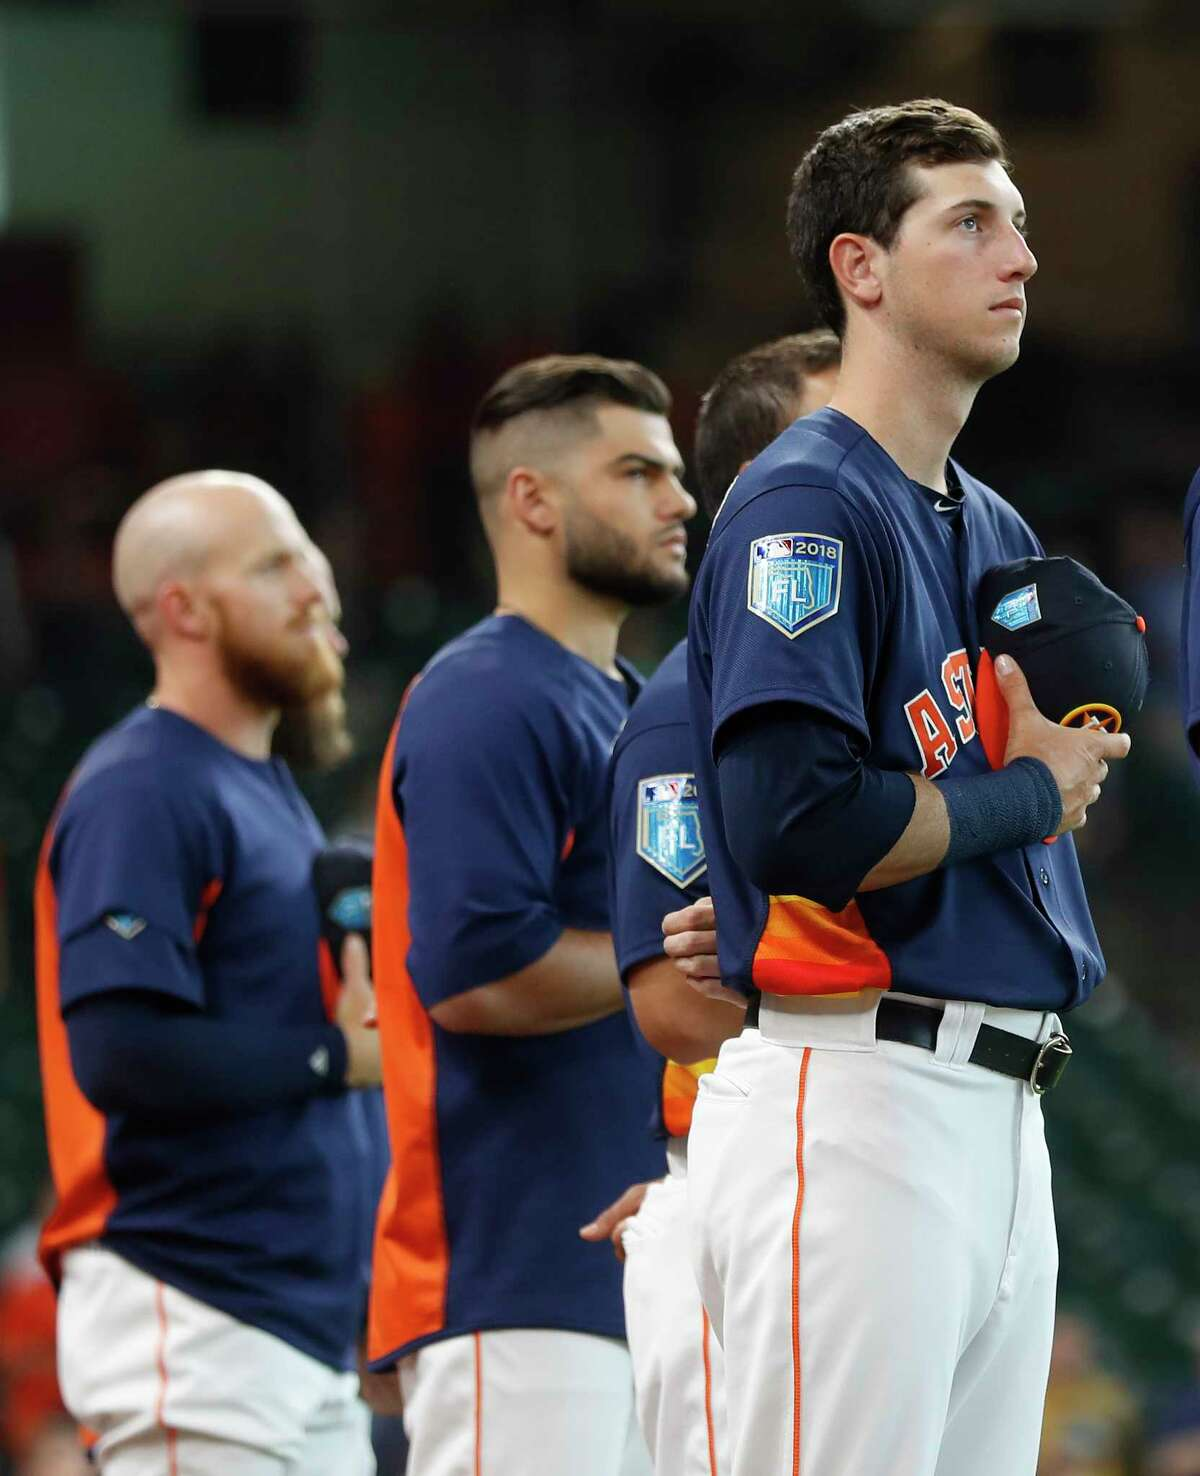 Houston Astros Kyle Tucker during the National Anthem before the first inning of an MLB exhibition game at Minute Maid Park, Tuesday, March 27, 2018, in Houston.